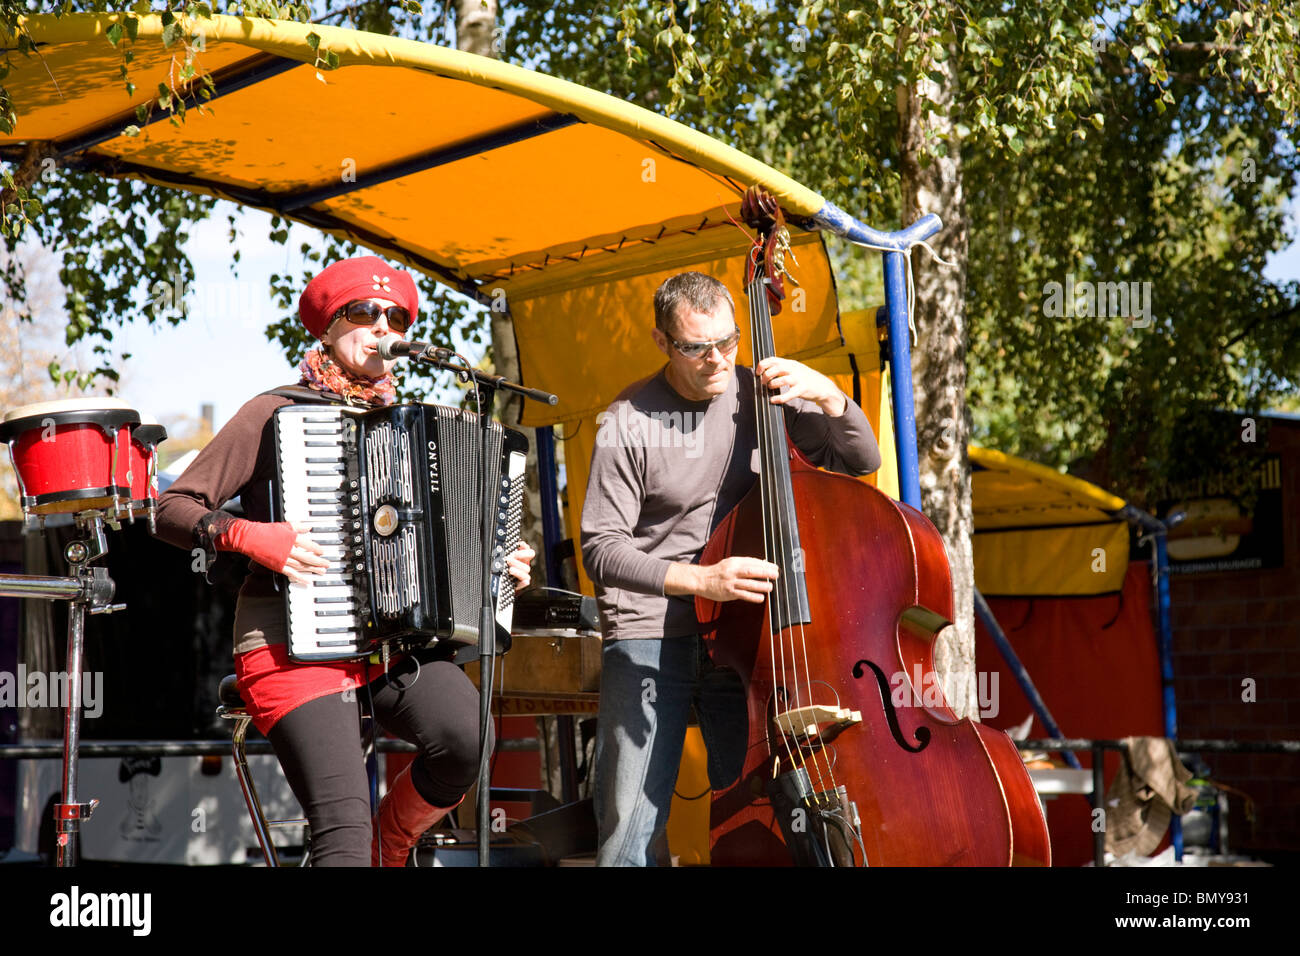 duet playing music to the crowd in christchurch,new zealand - Stock Image